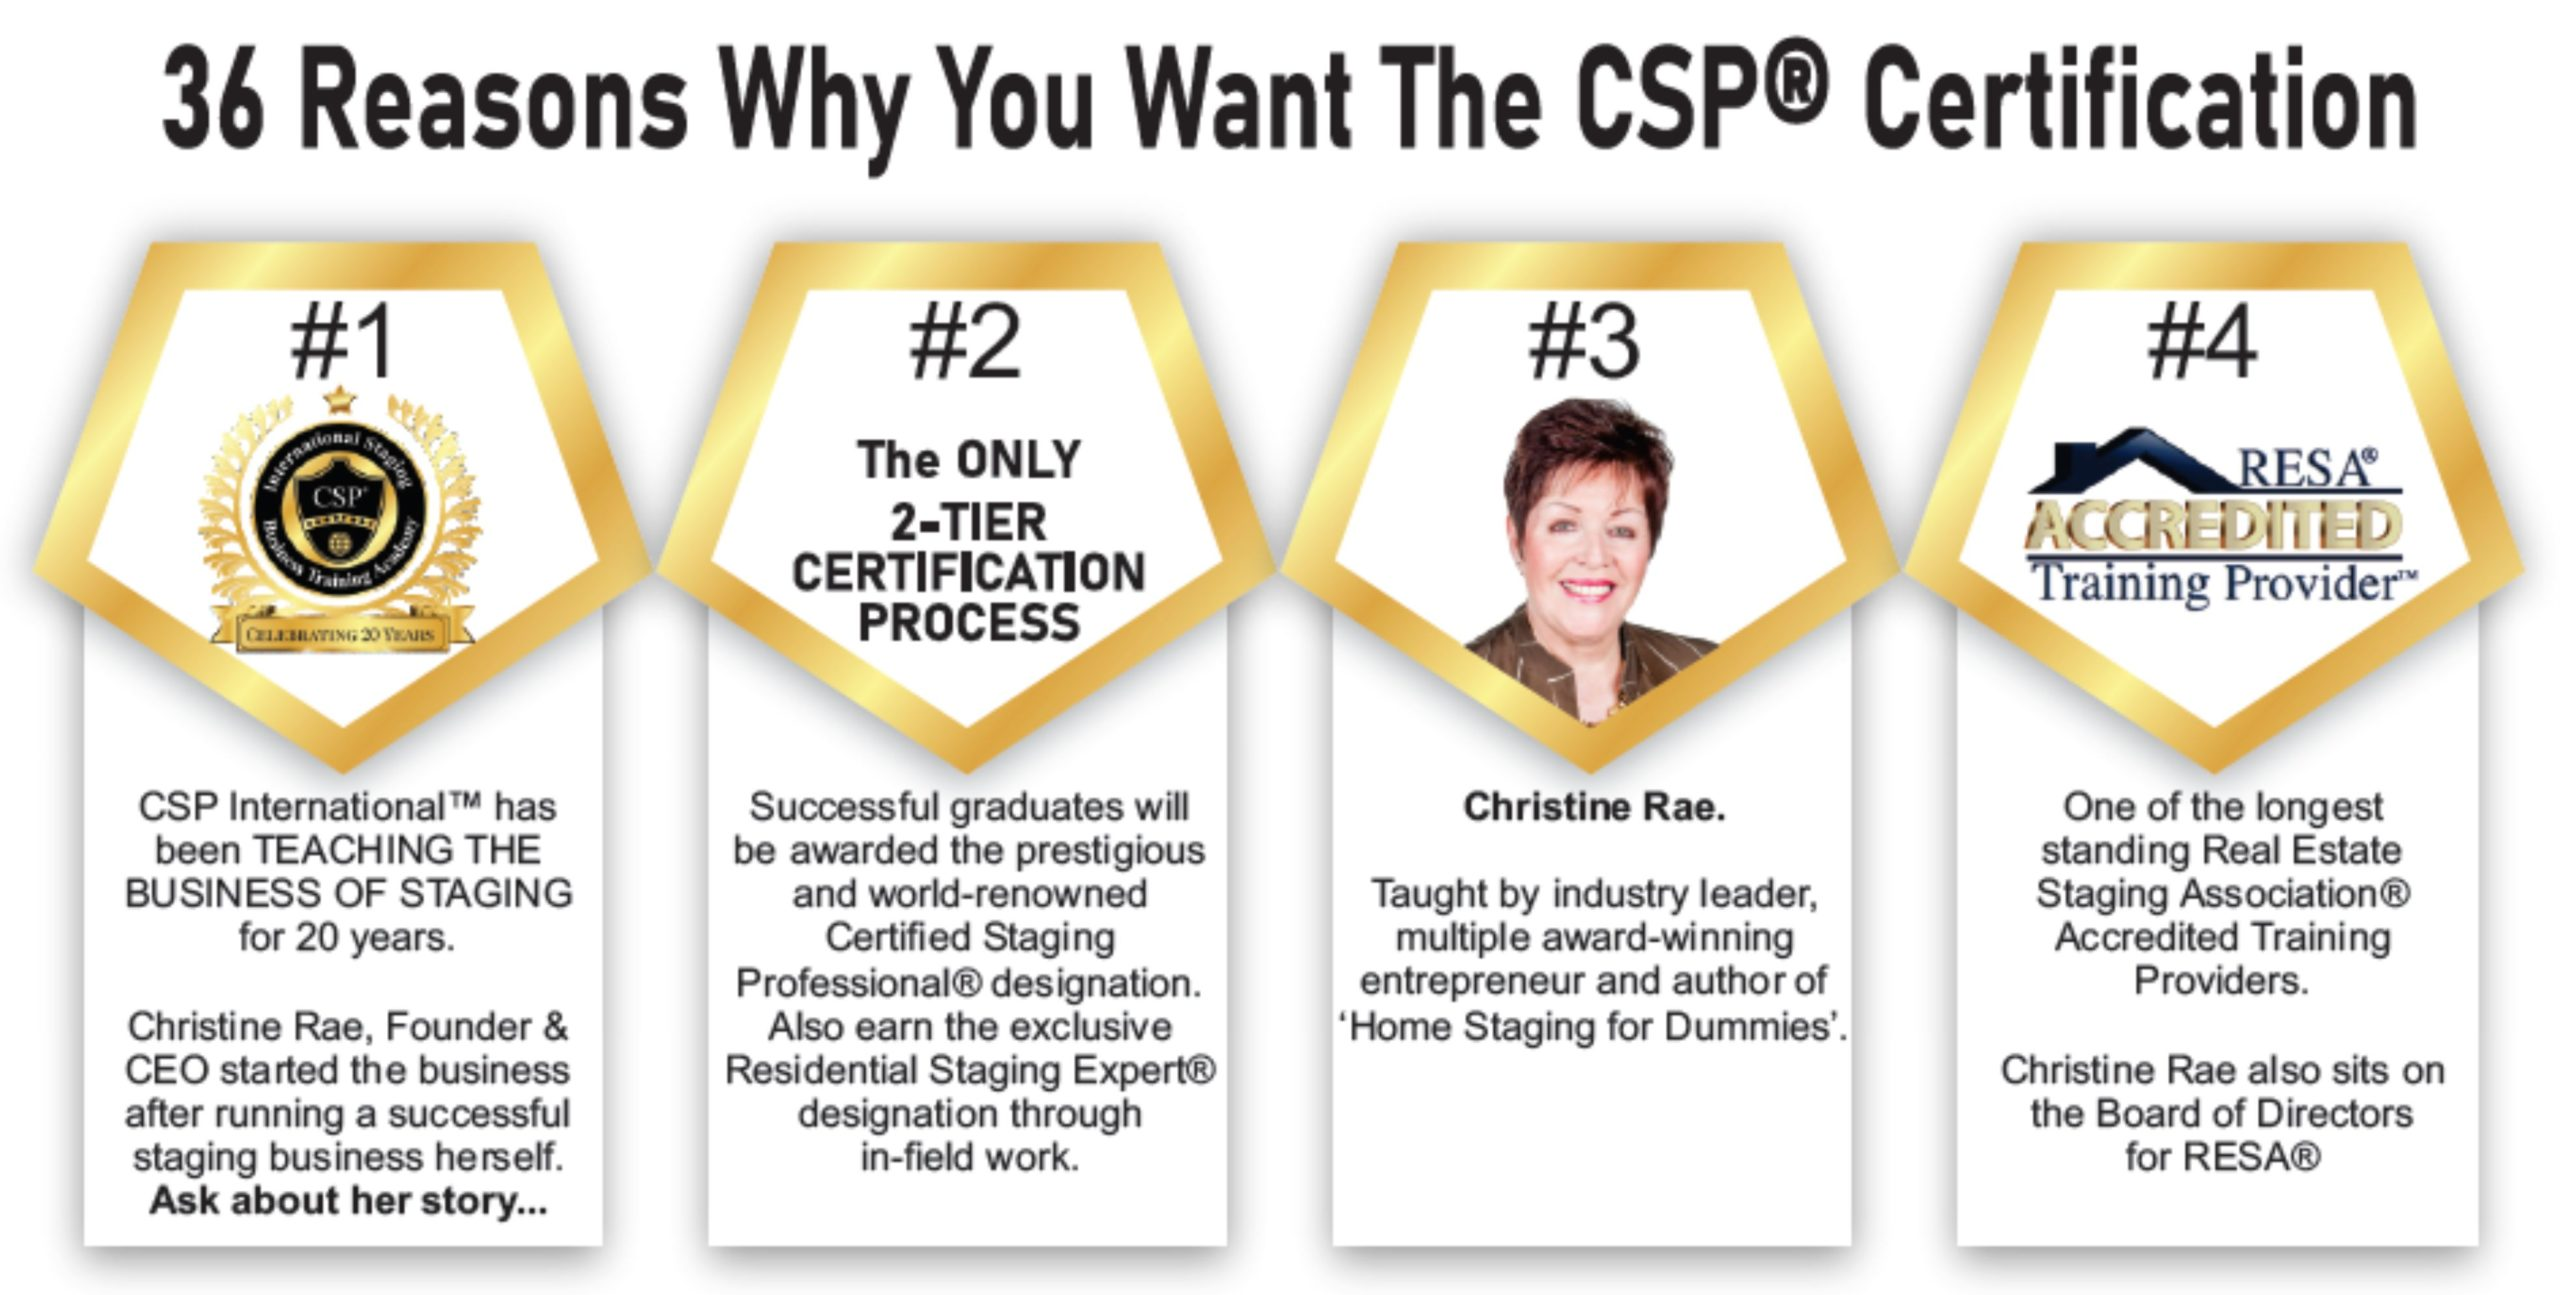 4 of 36 reasons for csp staging training